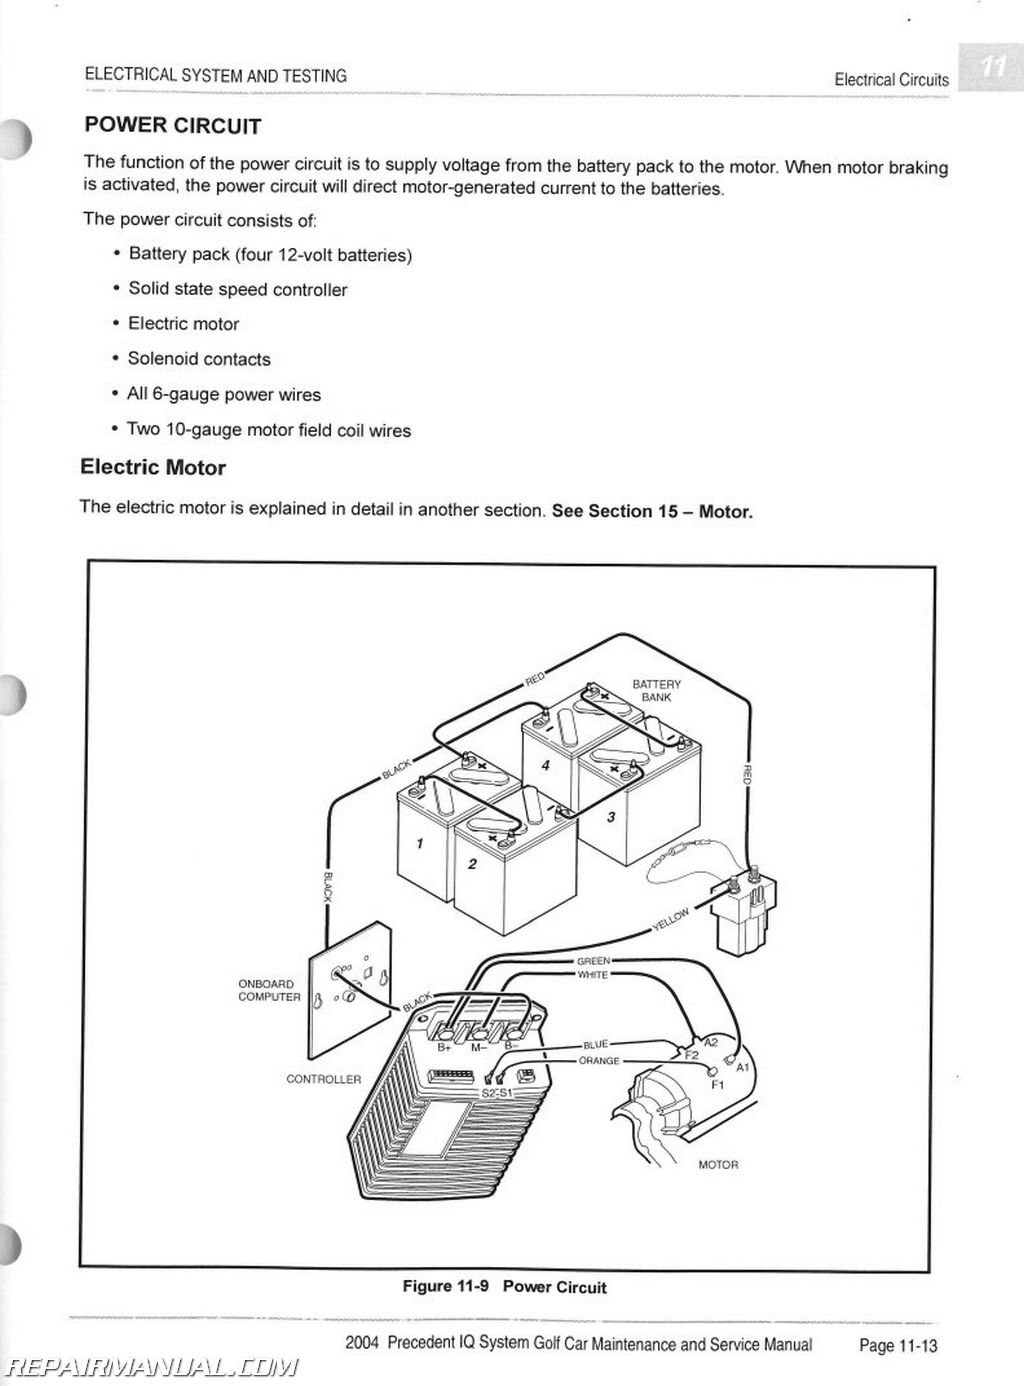 club cart wiring diagram for 2004 car precedent iq system electric vehicle